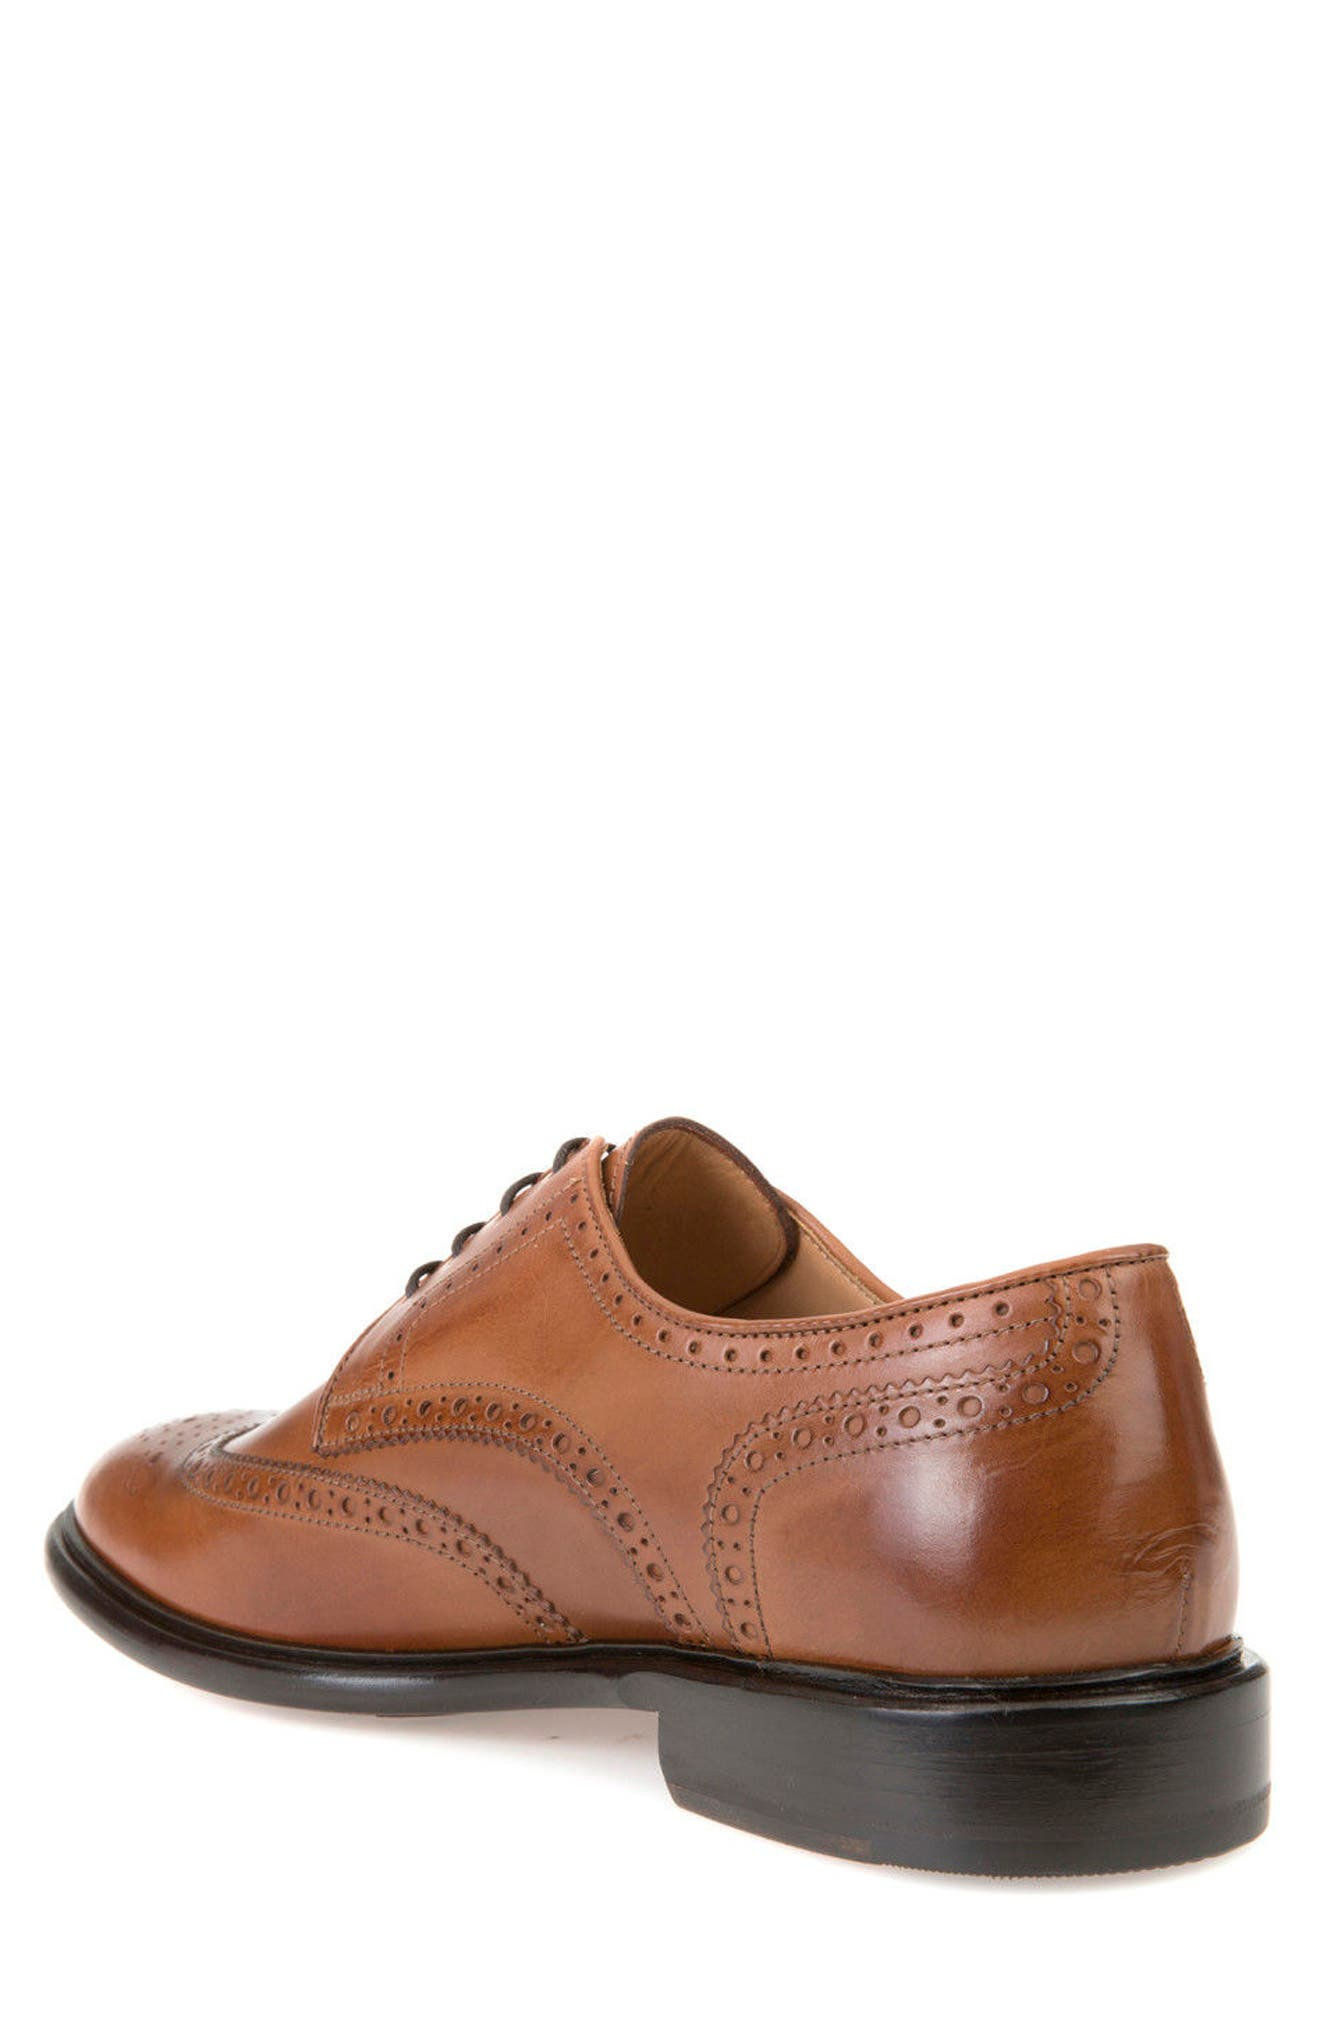 Guildford 4 Wingtip,                             Alternate thumbnail 2, color,                             204